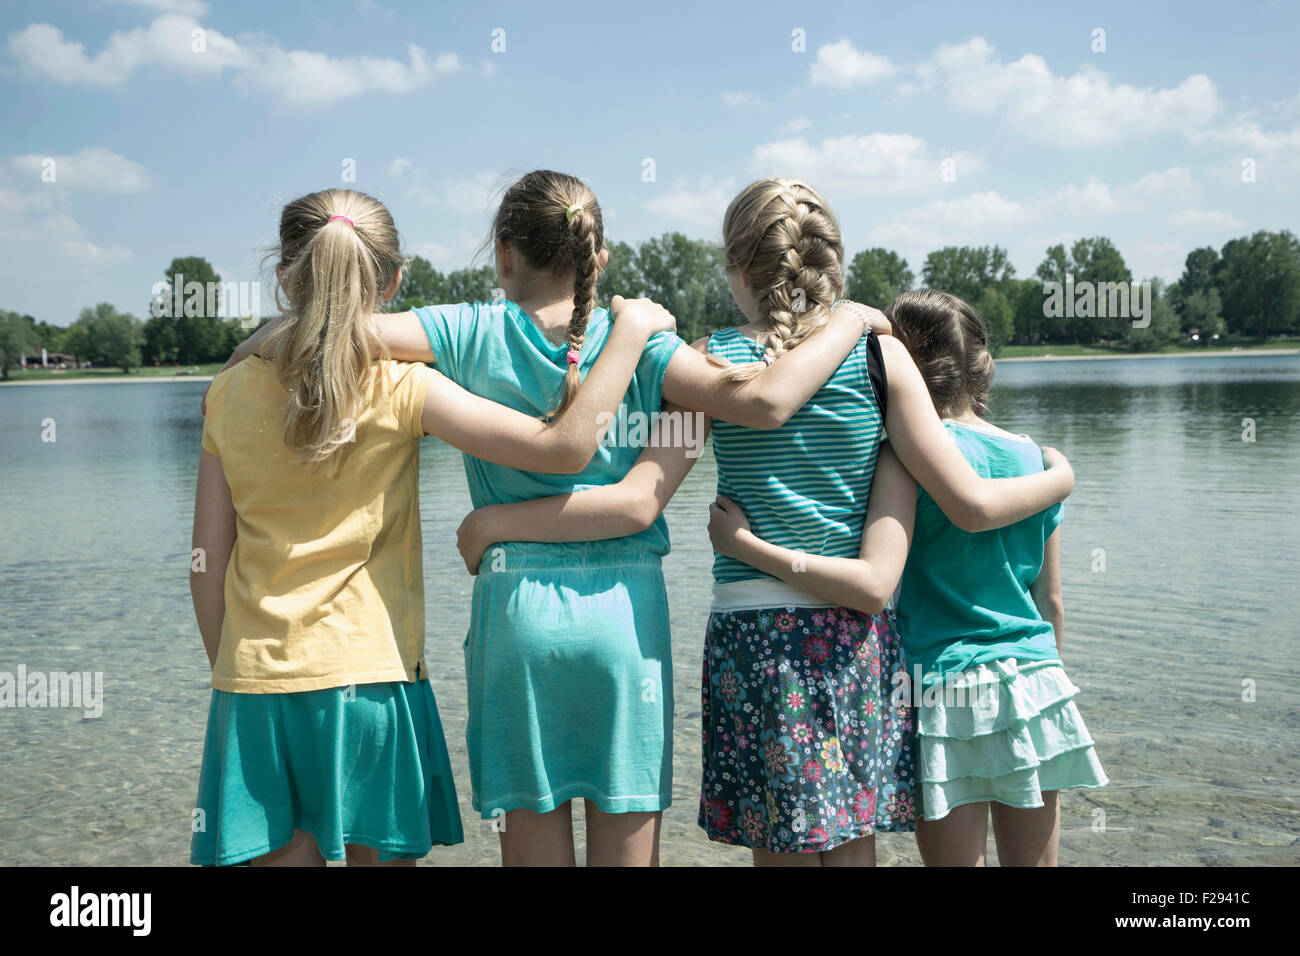 Group of friends standing in the lake, Bavaria, Germany Stock Photo